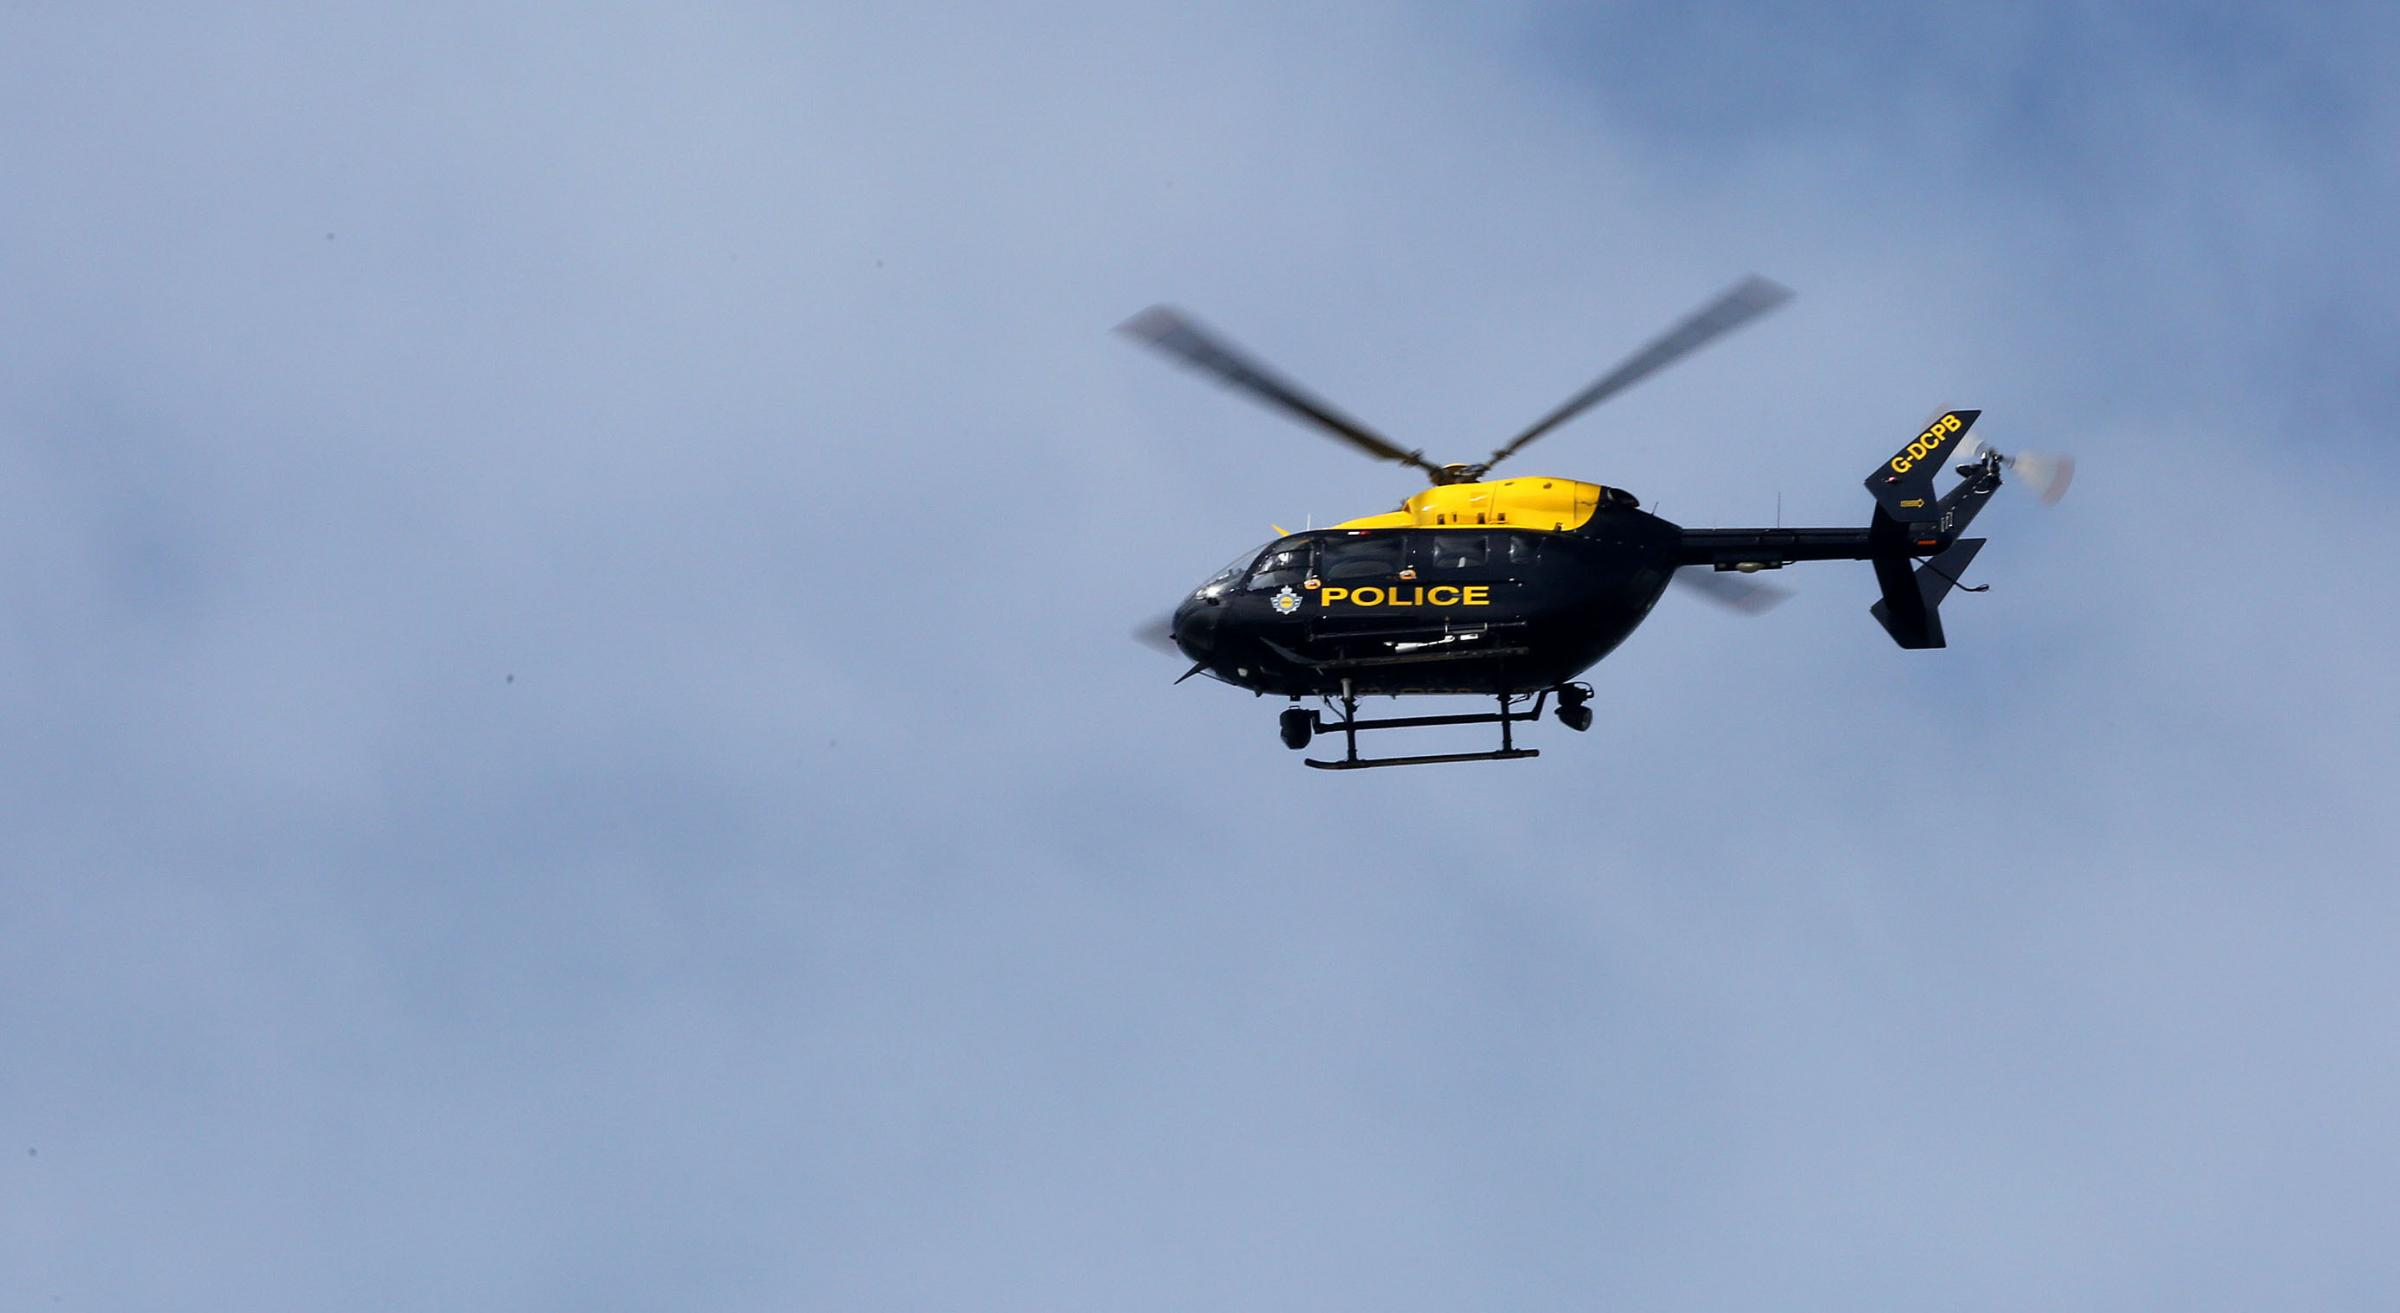 Police helicopter searches Boscombe after concern for welfare call